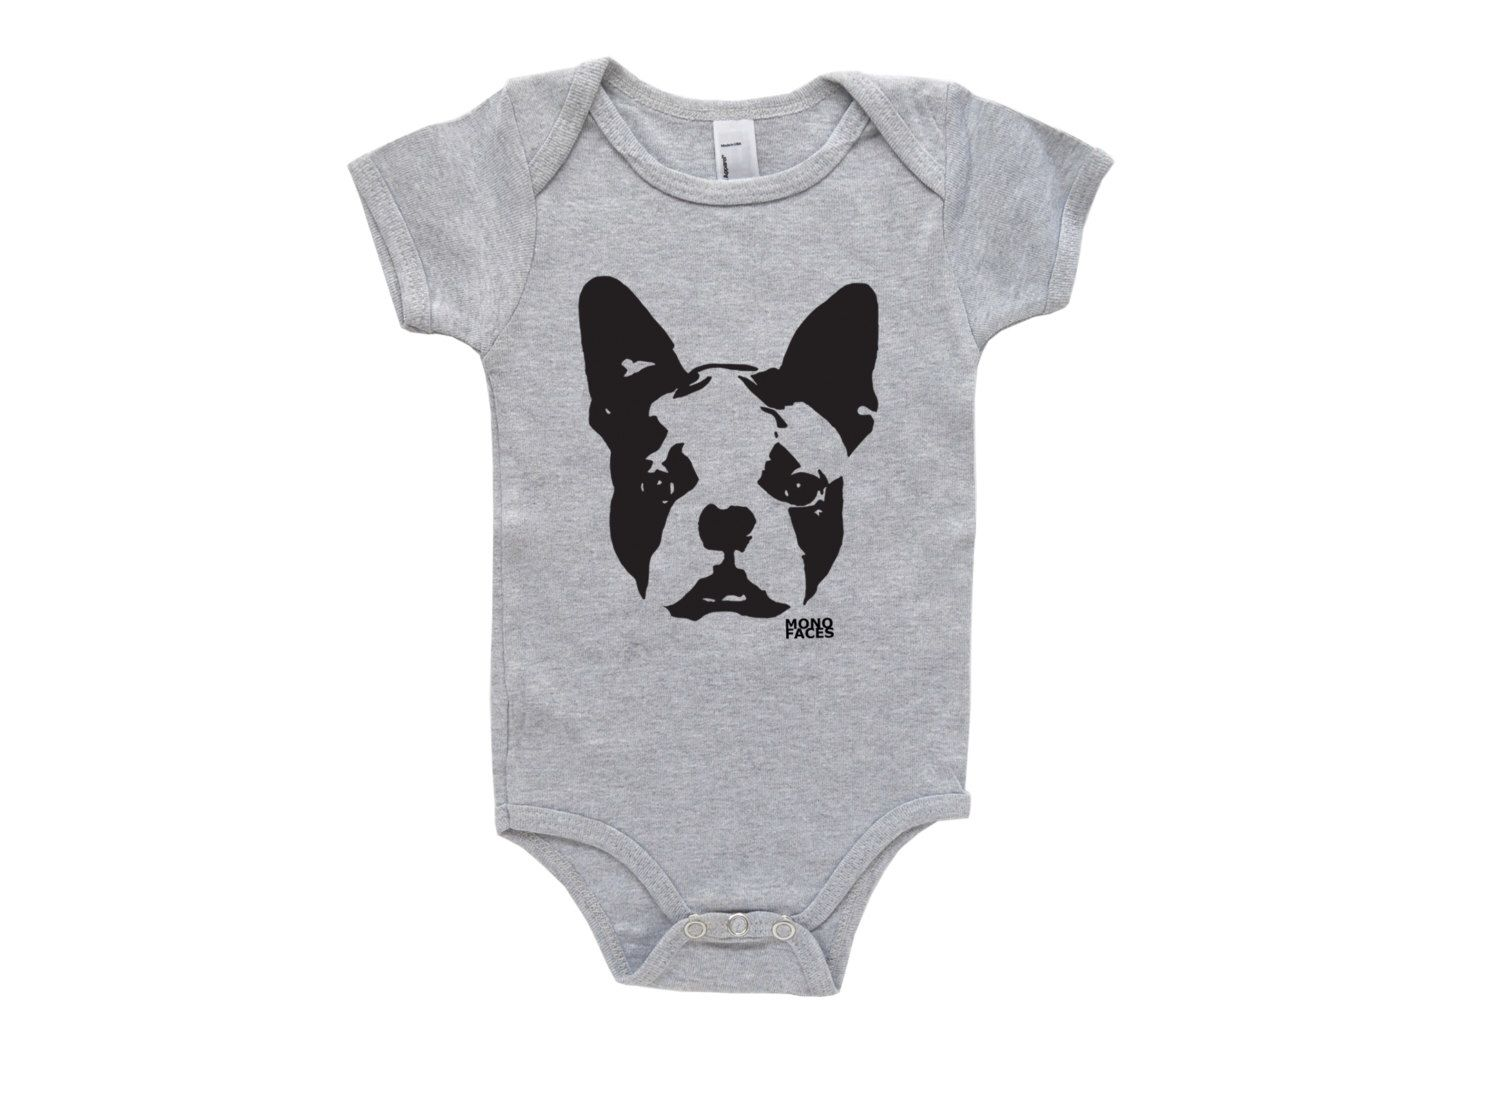 A gift from uncle cody and murphy boston terrier baby onepiece a gift from uncle cody and murphy boston terrier baby onepiece dog baby announcement hipster boy clothes personalized baby girl clothes negle Choice Image